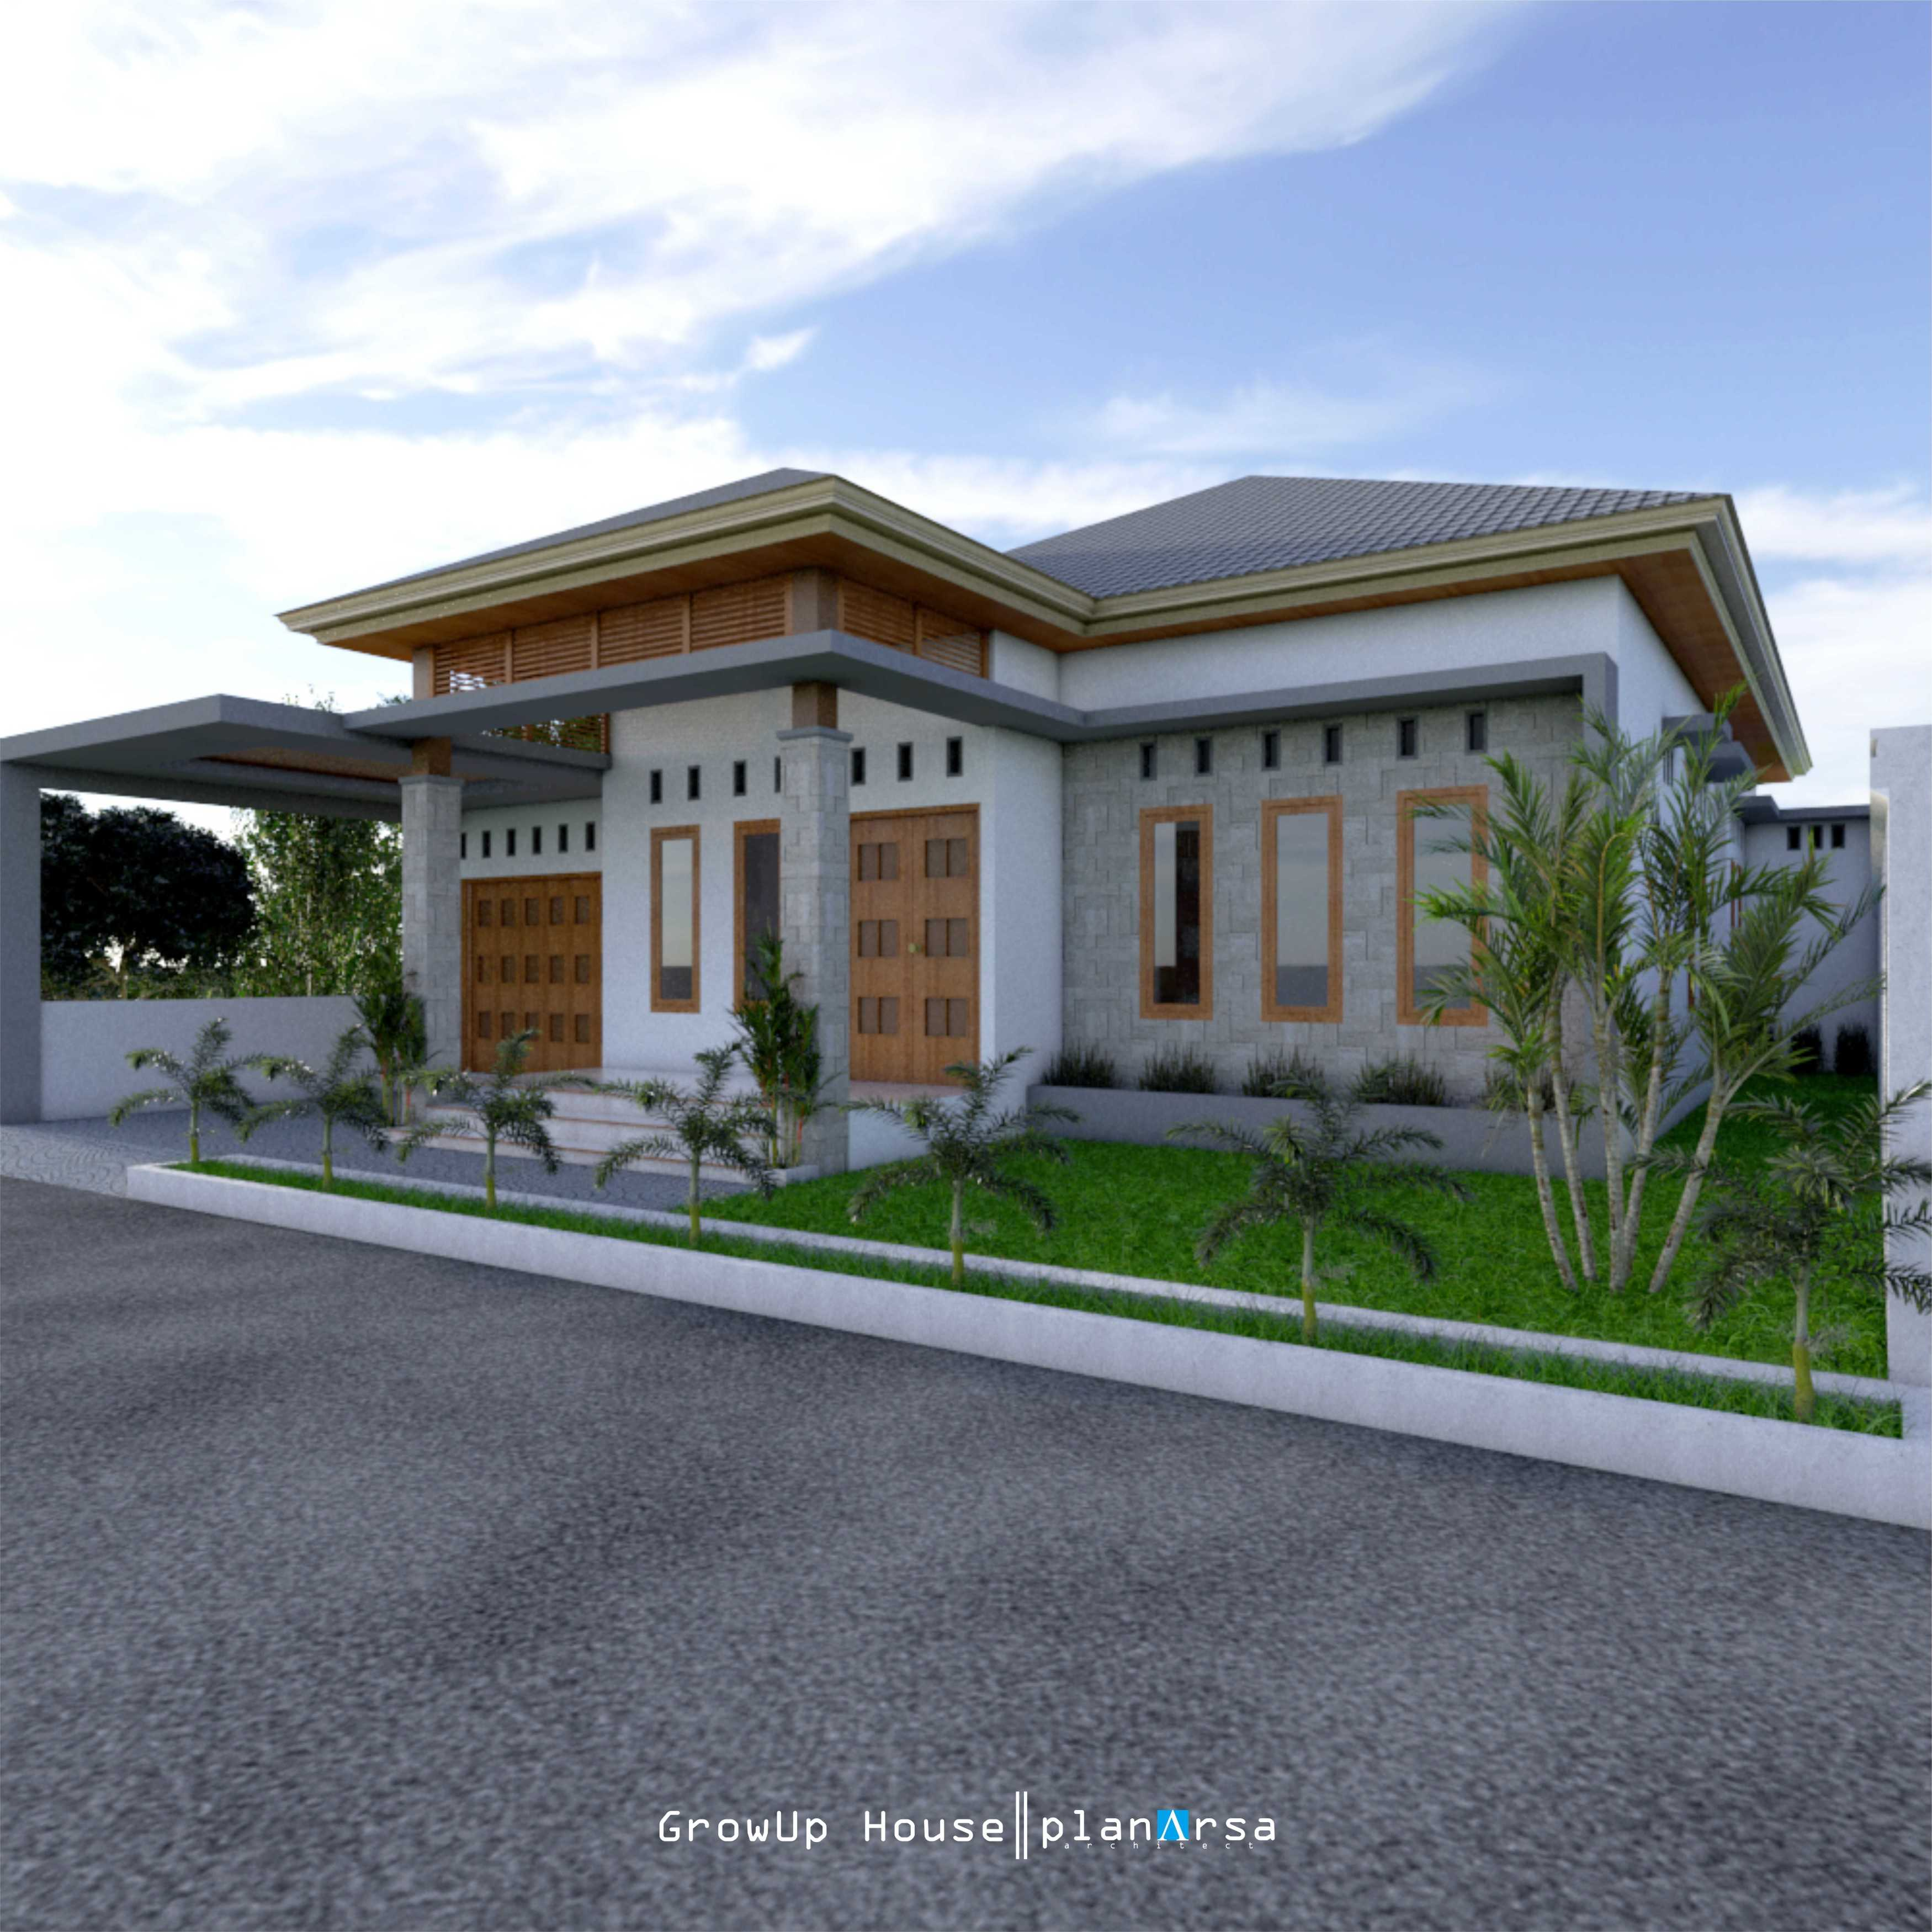 Planarsa Architect Growup House Aceh, Indonesia Aceh, Indonesia Planarsa-Architect-Growup-House   79254